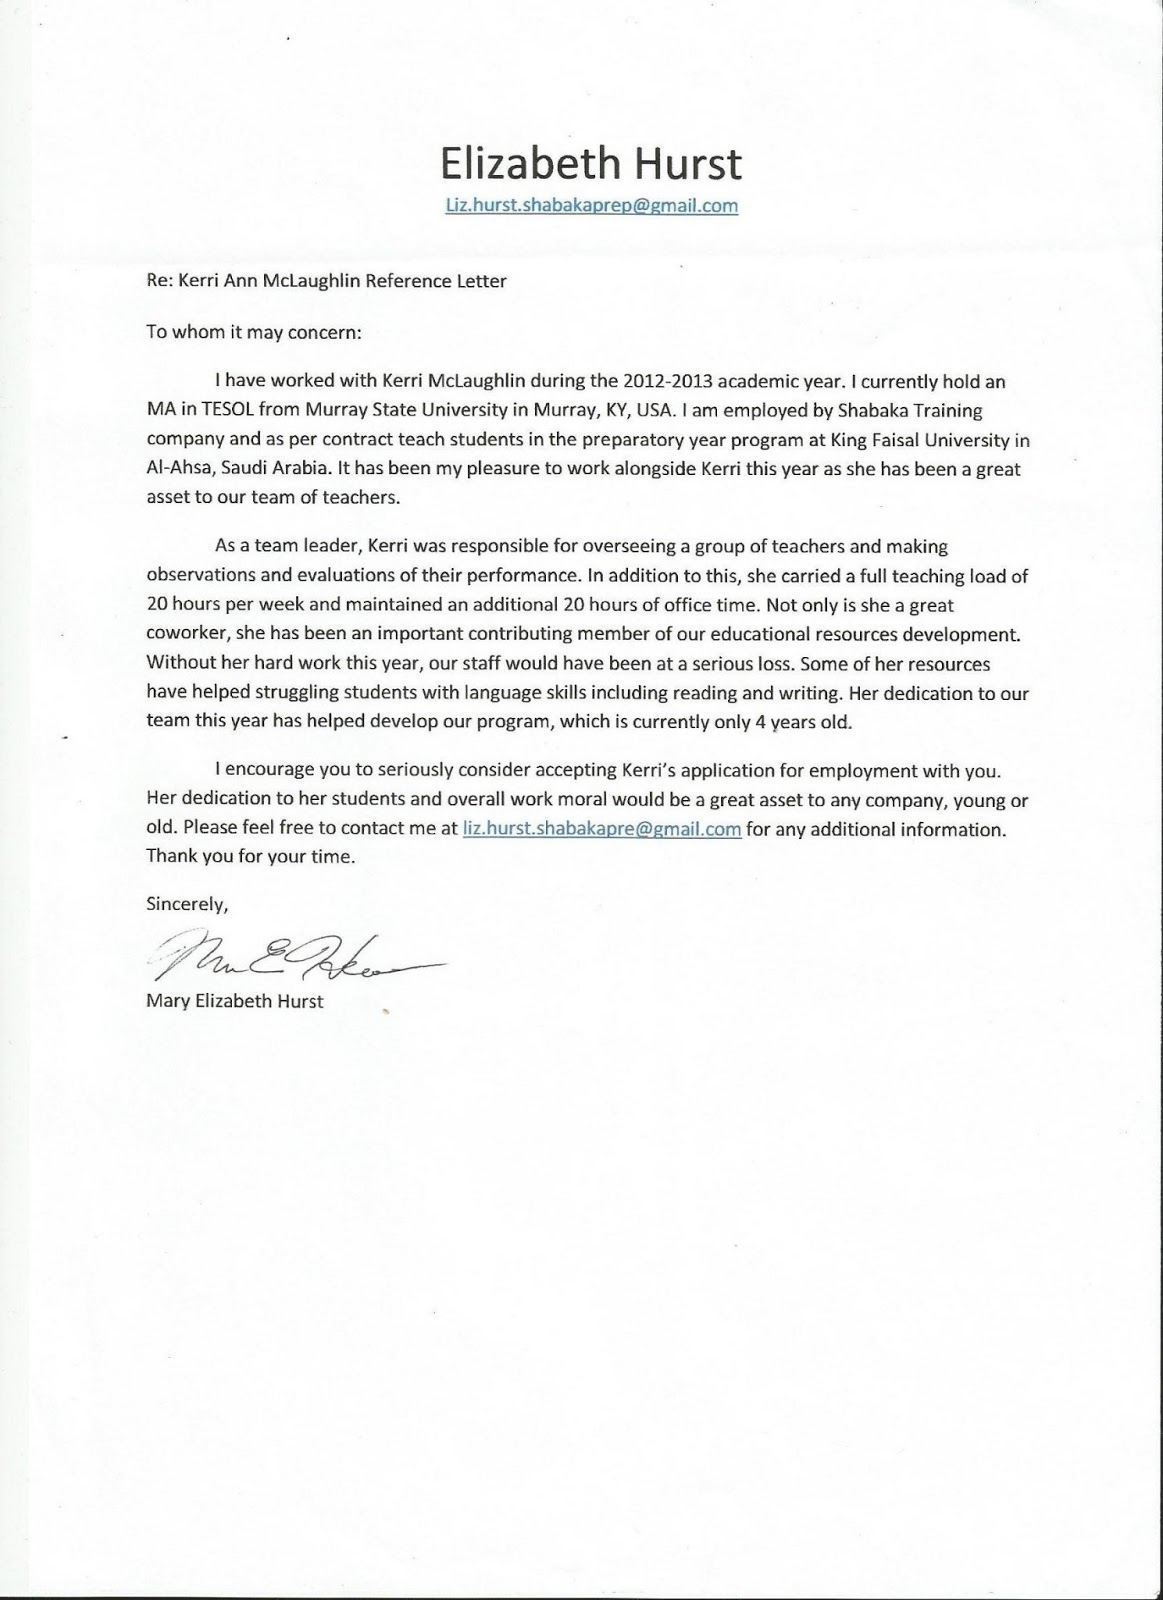 Sample Letter of Recommendation for a Coworker